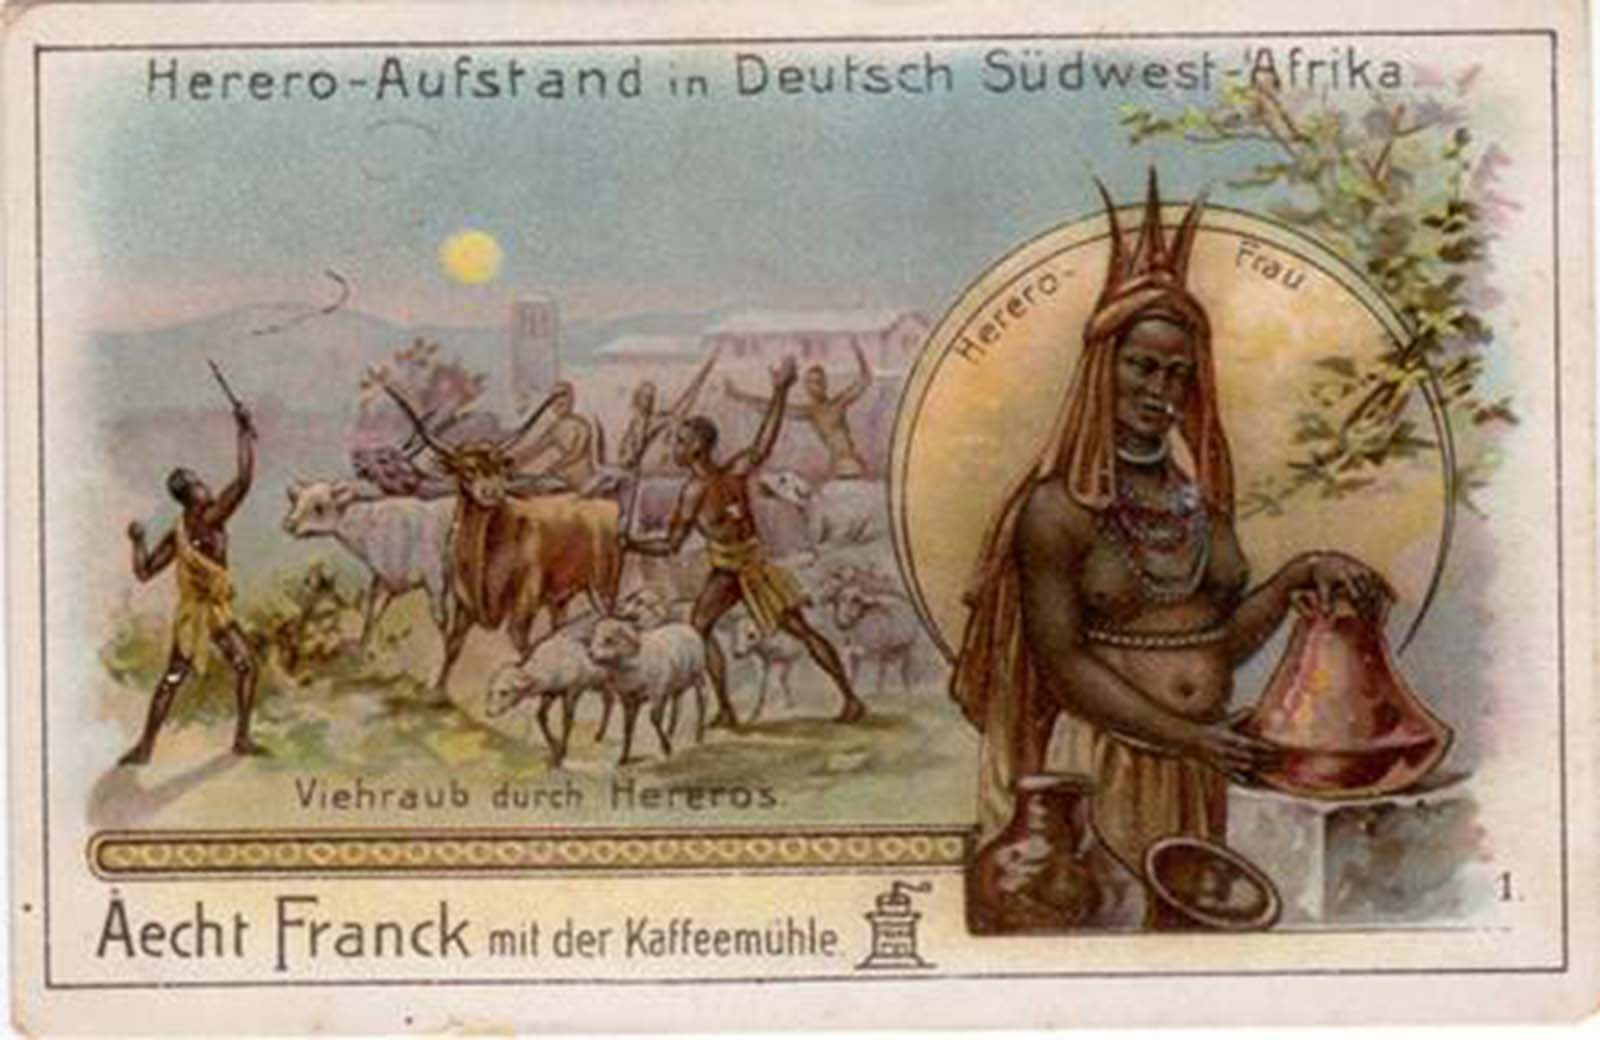 In this postcard, the Herero Rebellion is casually combined with advertising for coffee.